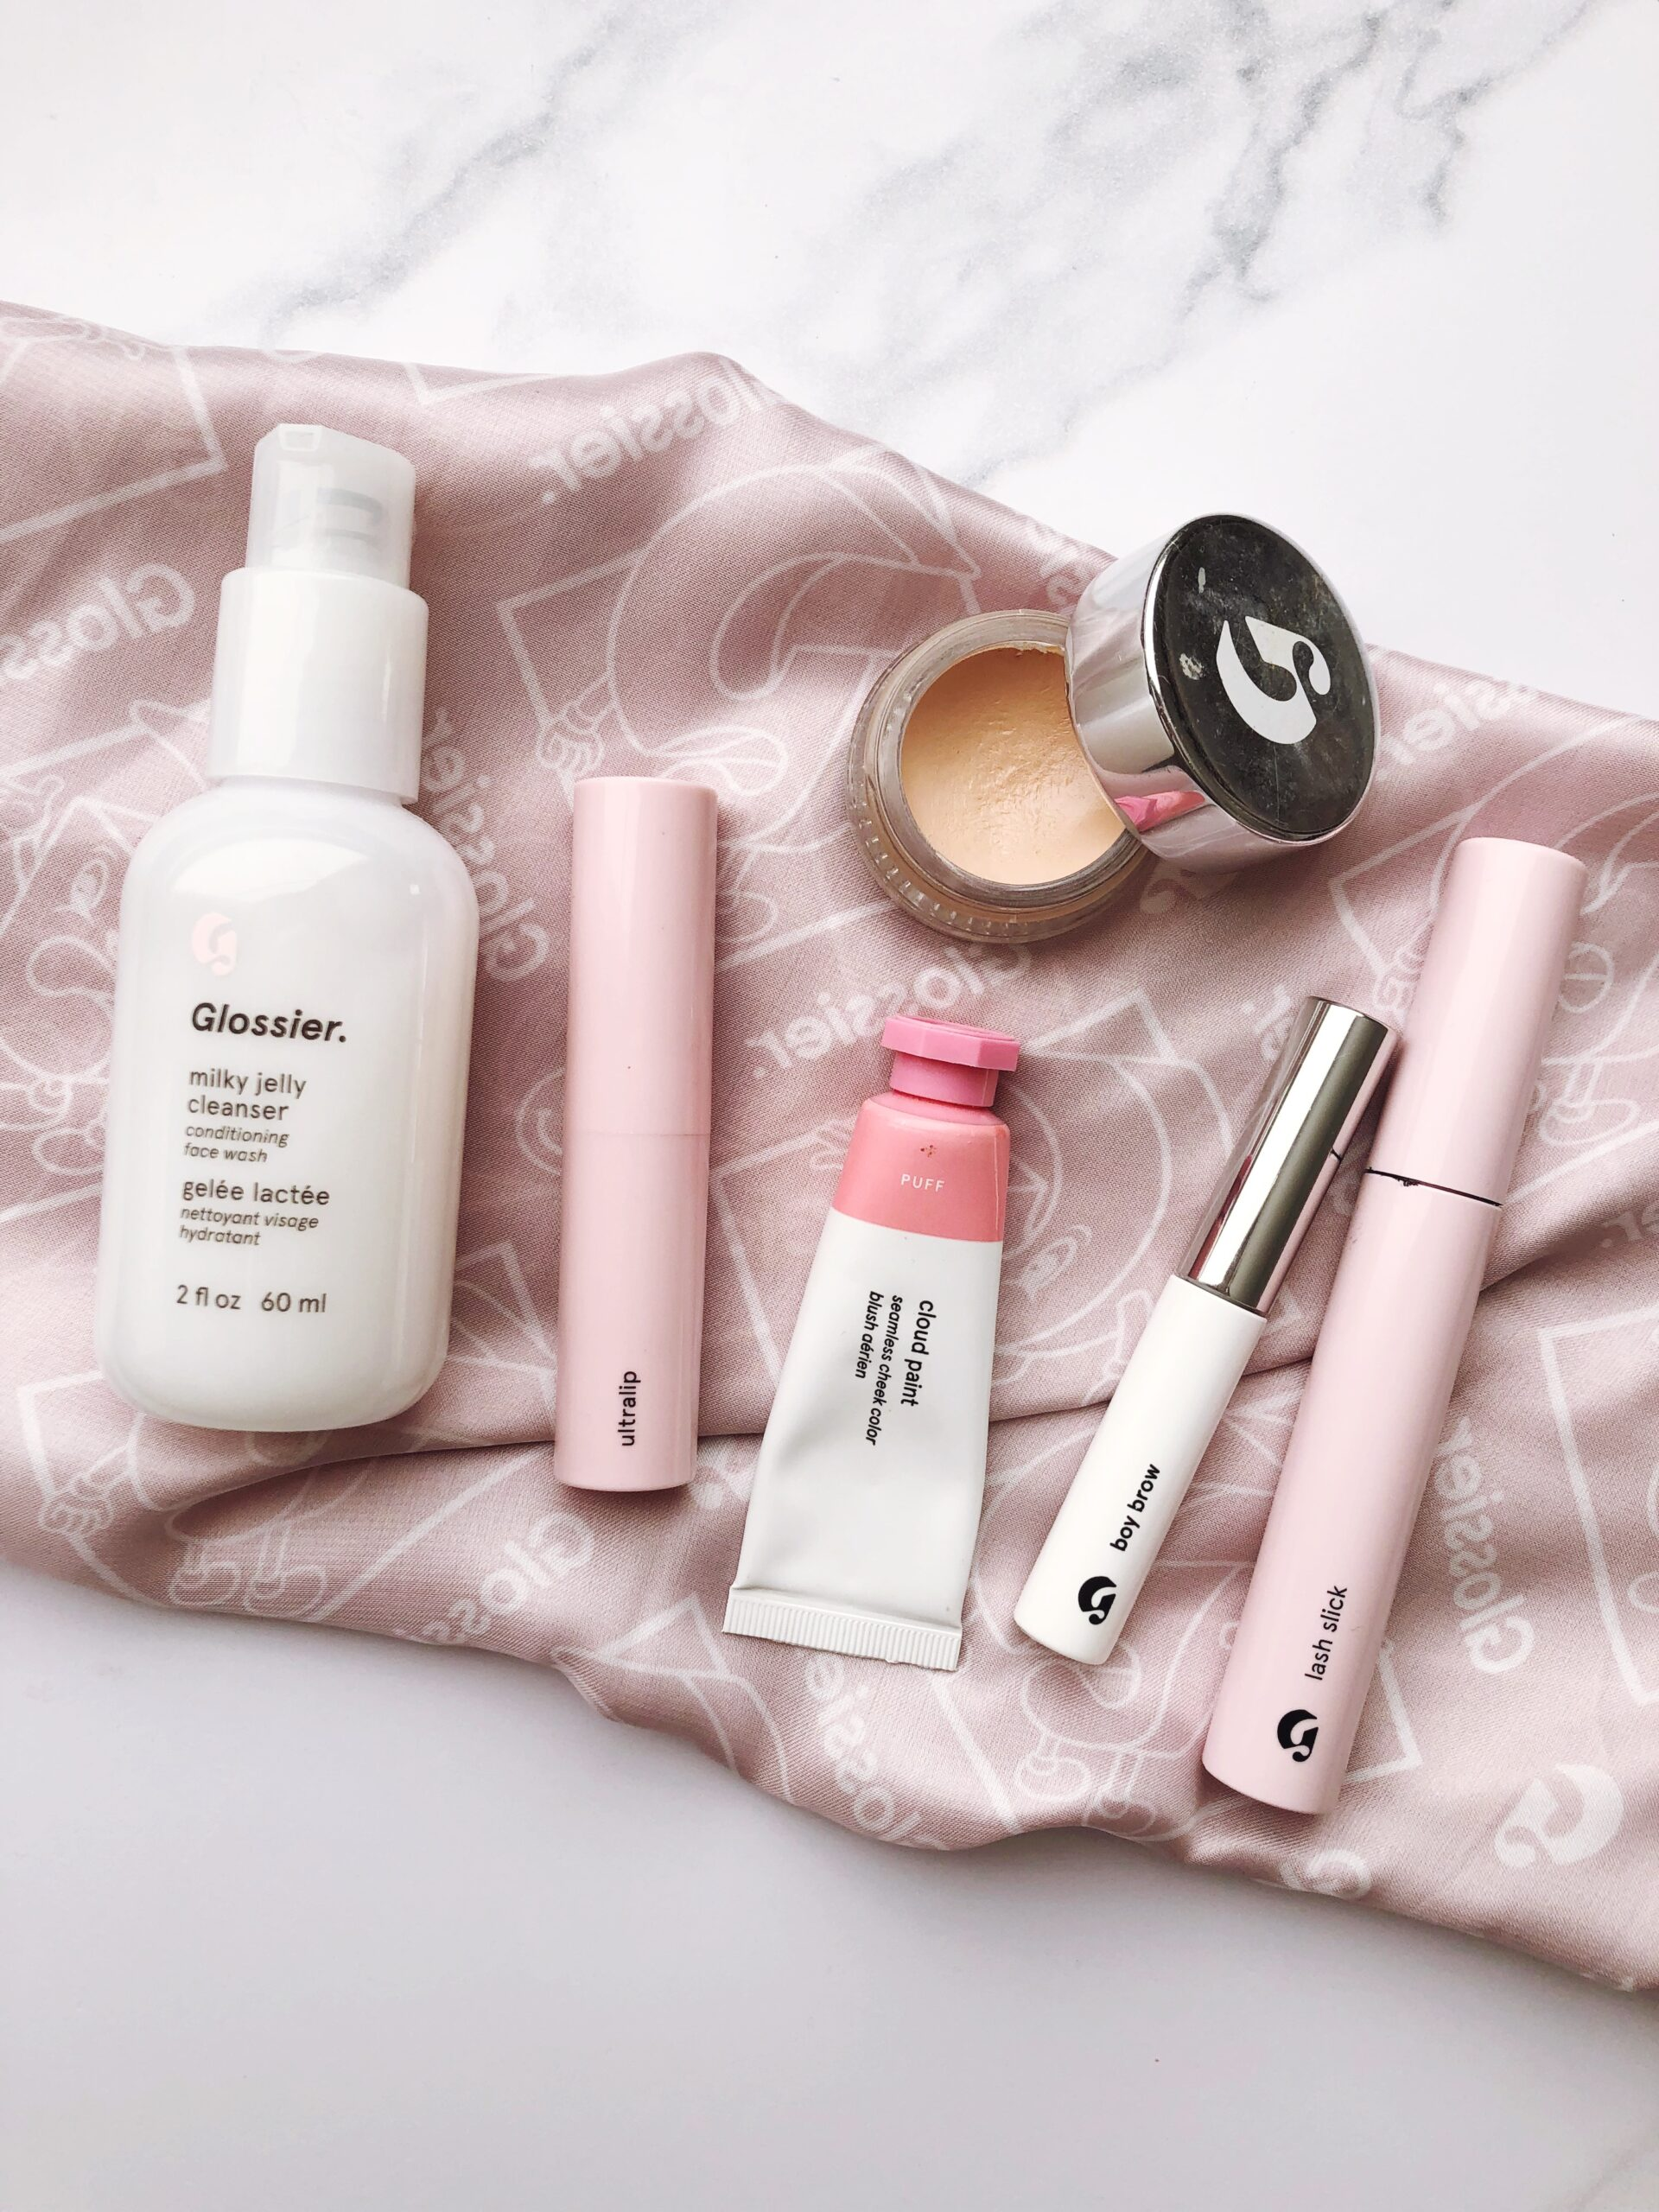 What to buy if you're new to Glossier